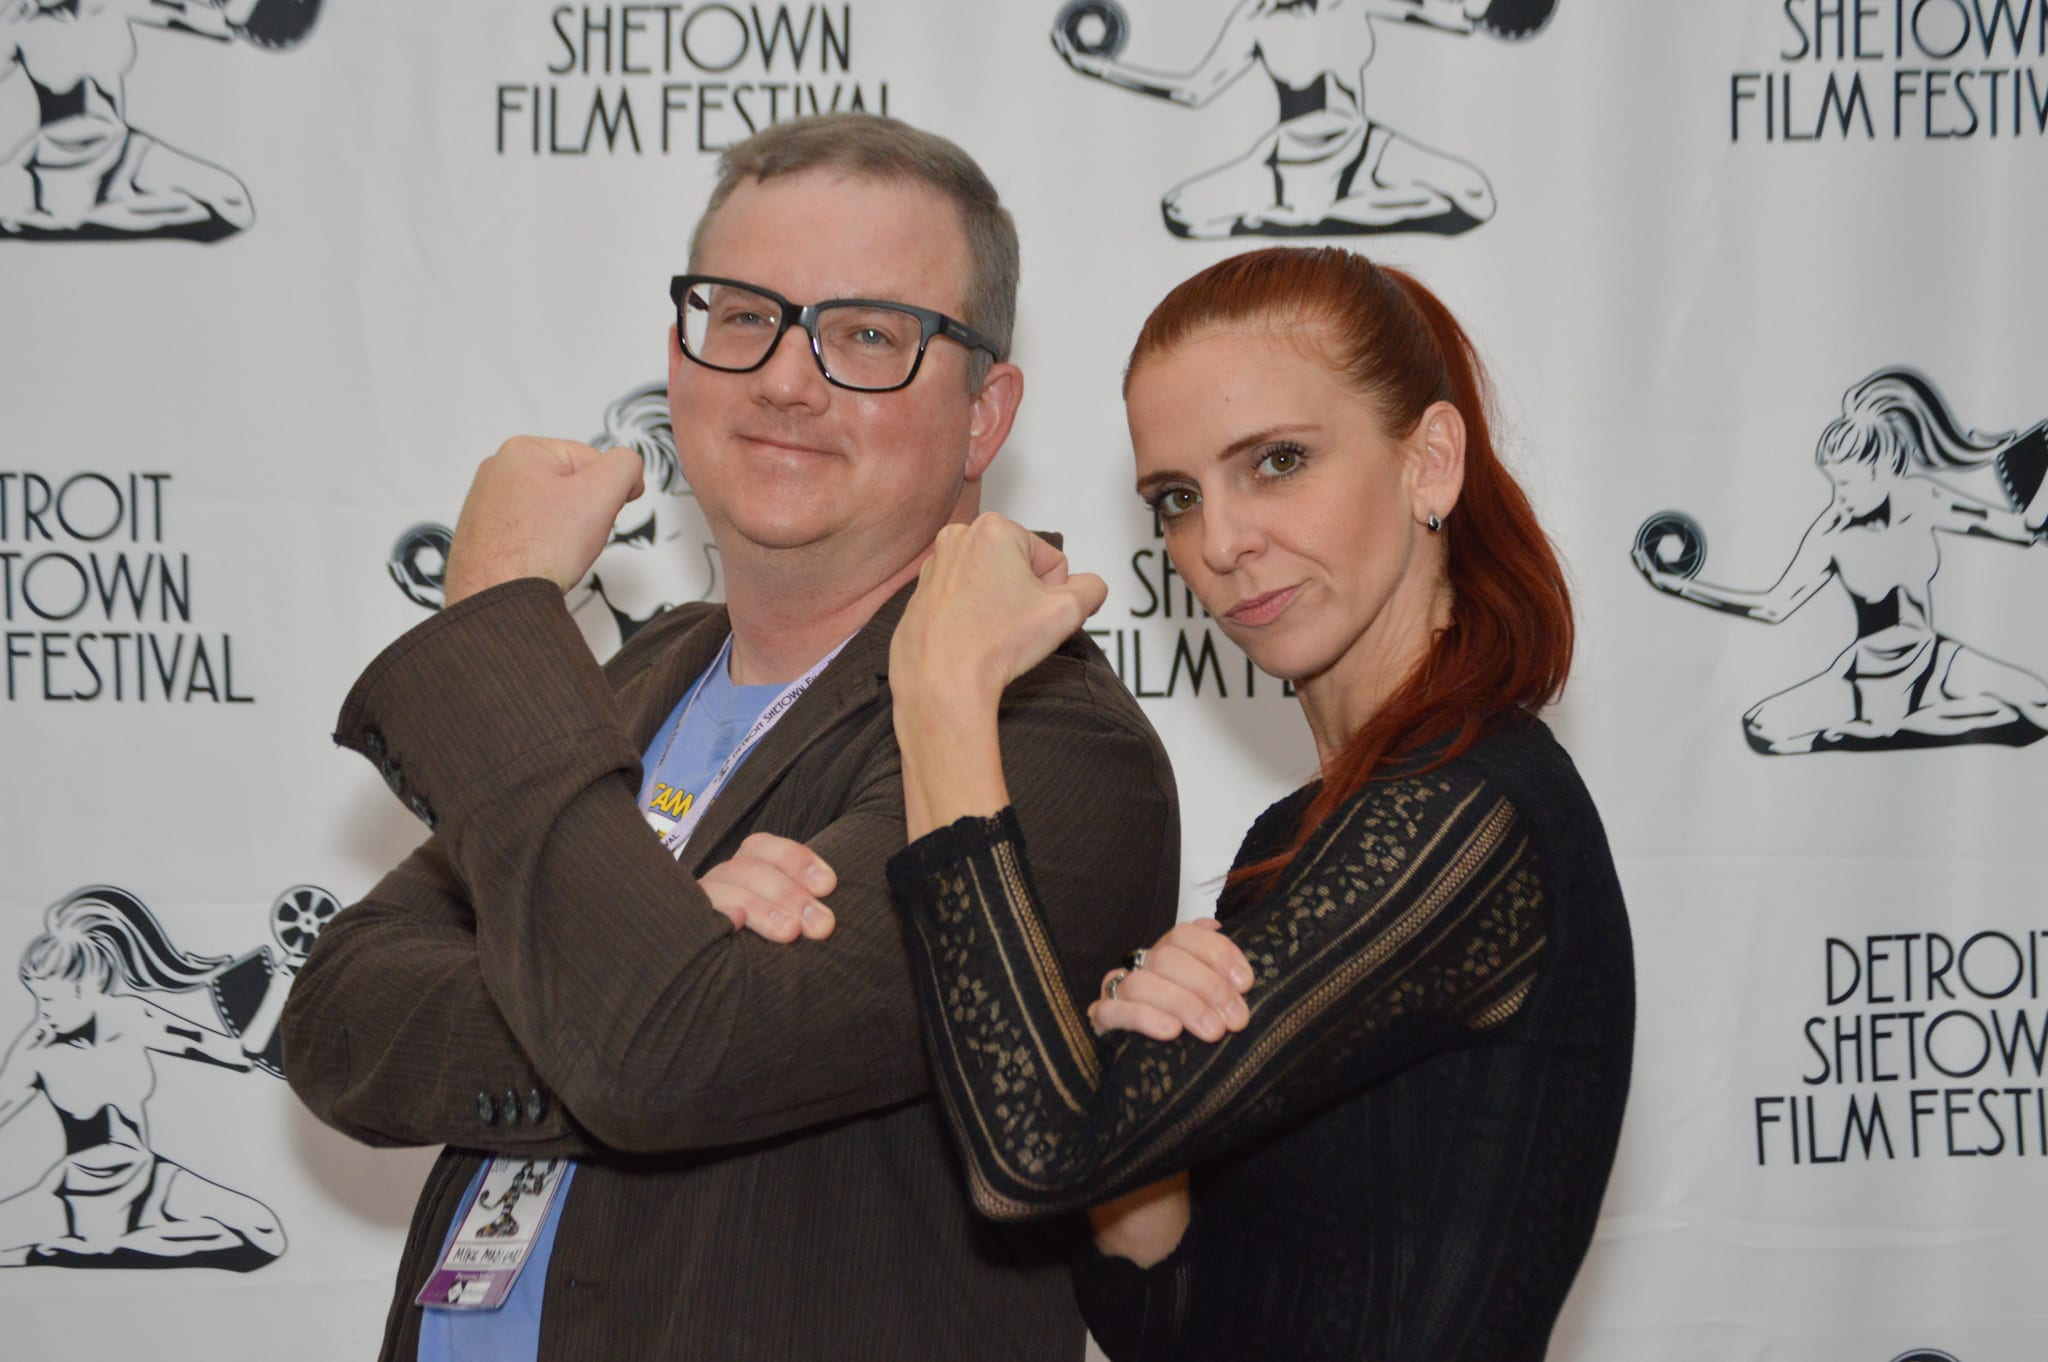 Interview With Mandy Looney And Mike Madigan, Filmmakers And Co-Founders Of The Detroit SheTown Film Festival